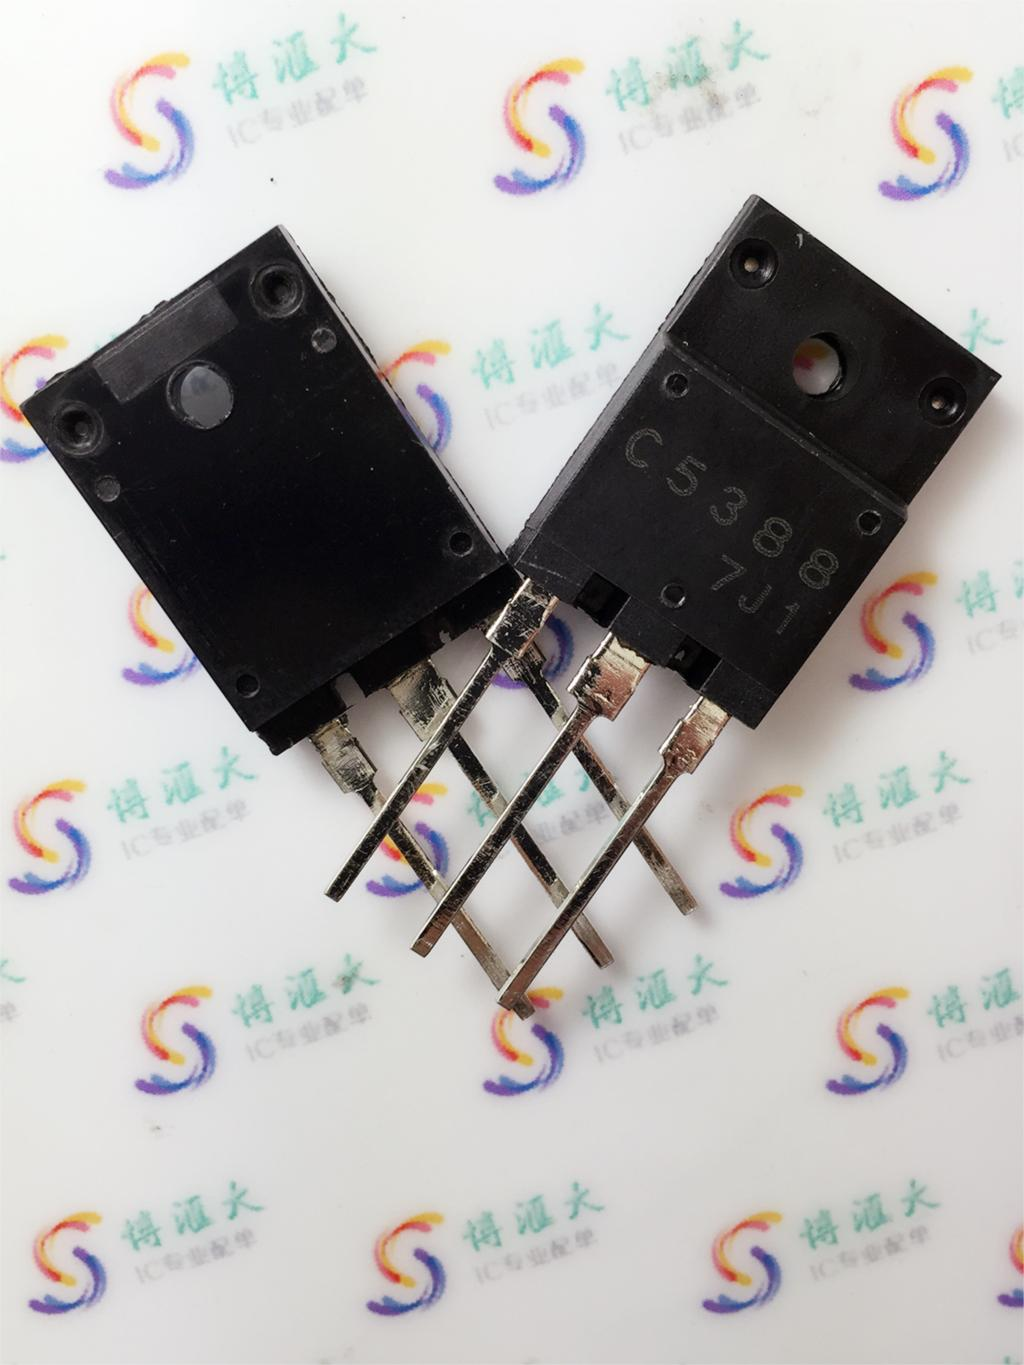 Module 2SC5388 C5388 TO-3P Original authentic and new Free Shipping 2sd718 d718 to 3p